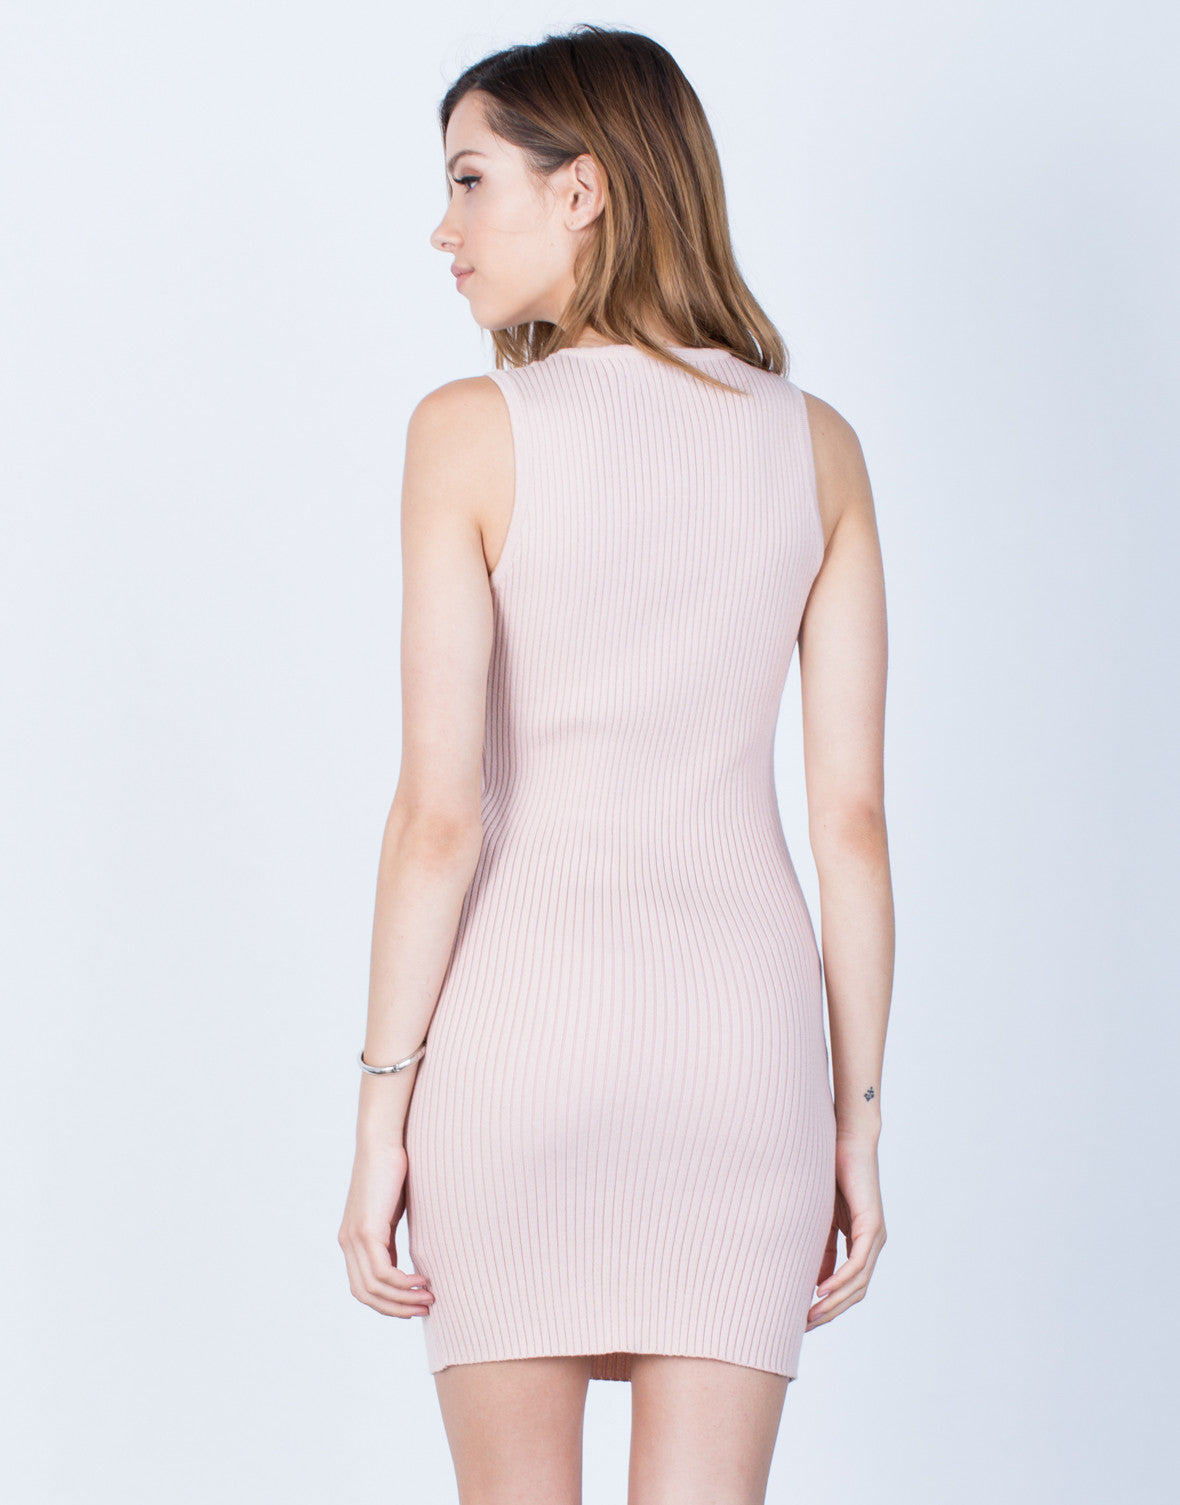 Back View of Ribbed Knit Lace-Up Dress